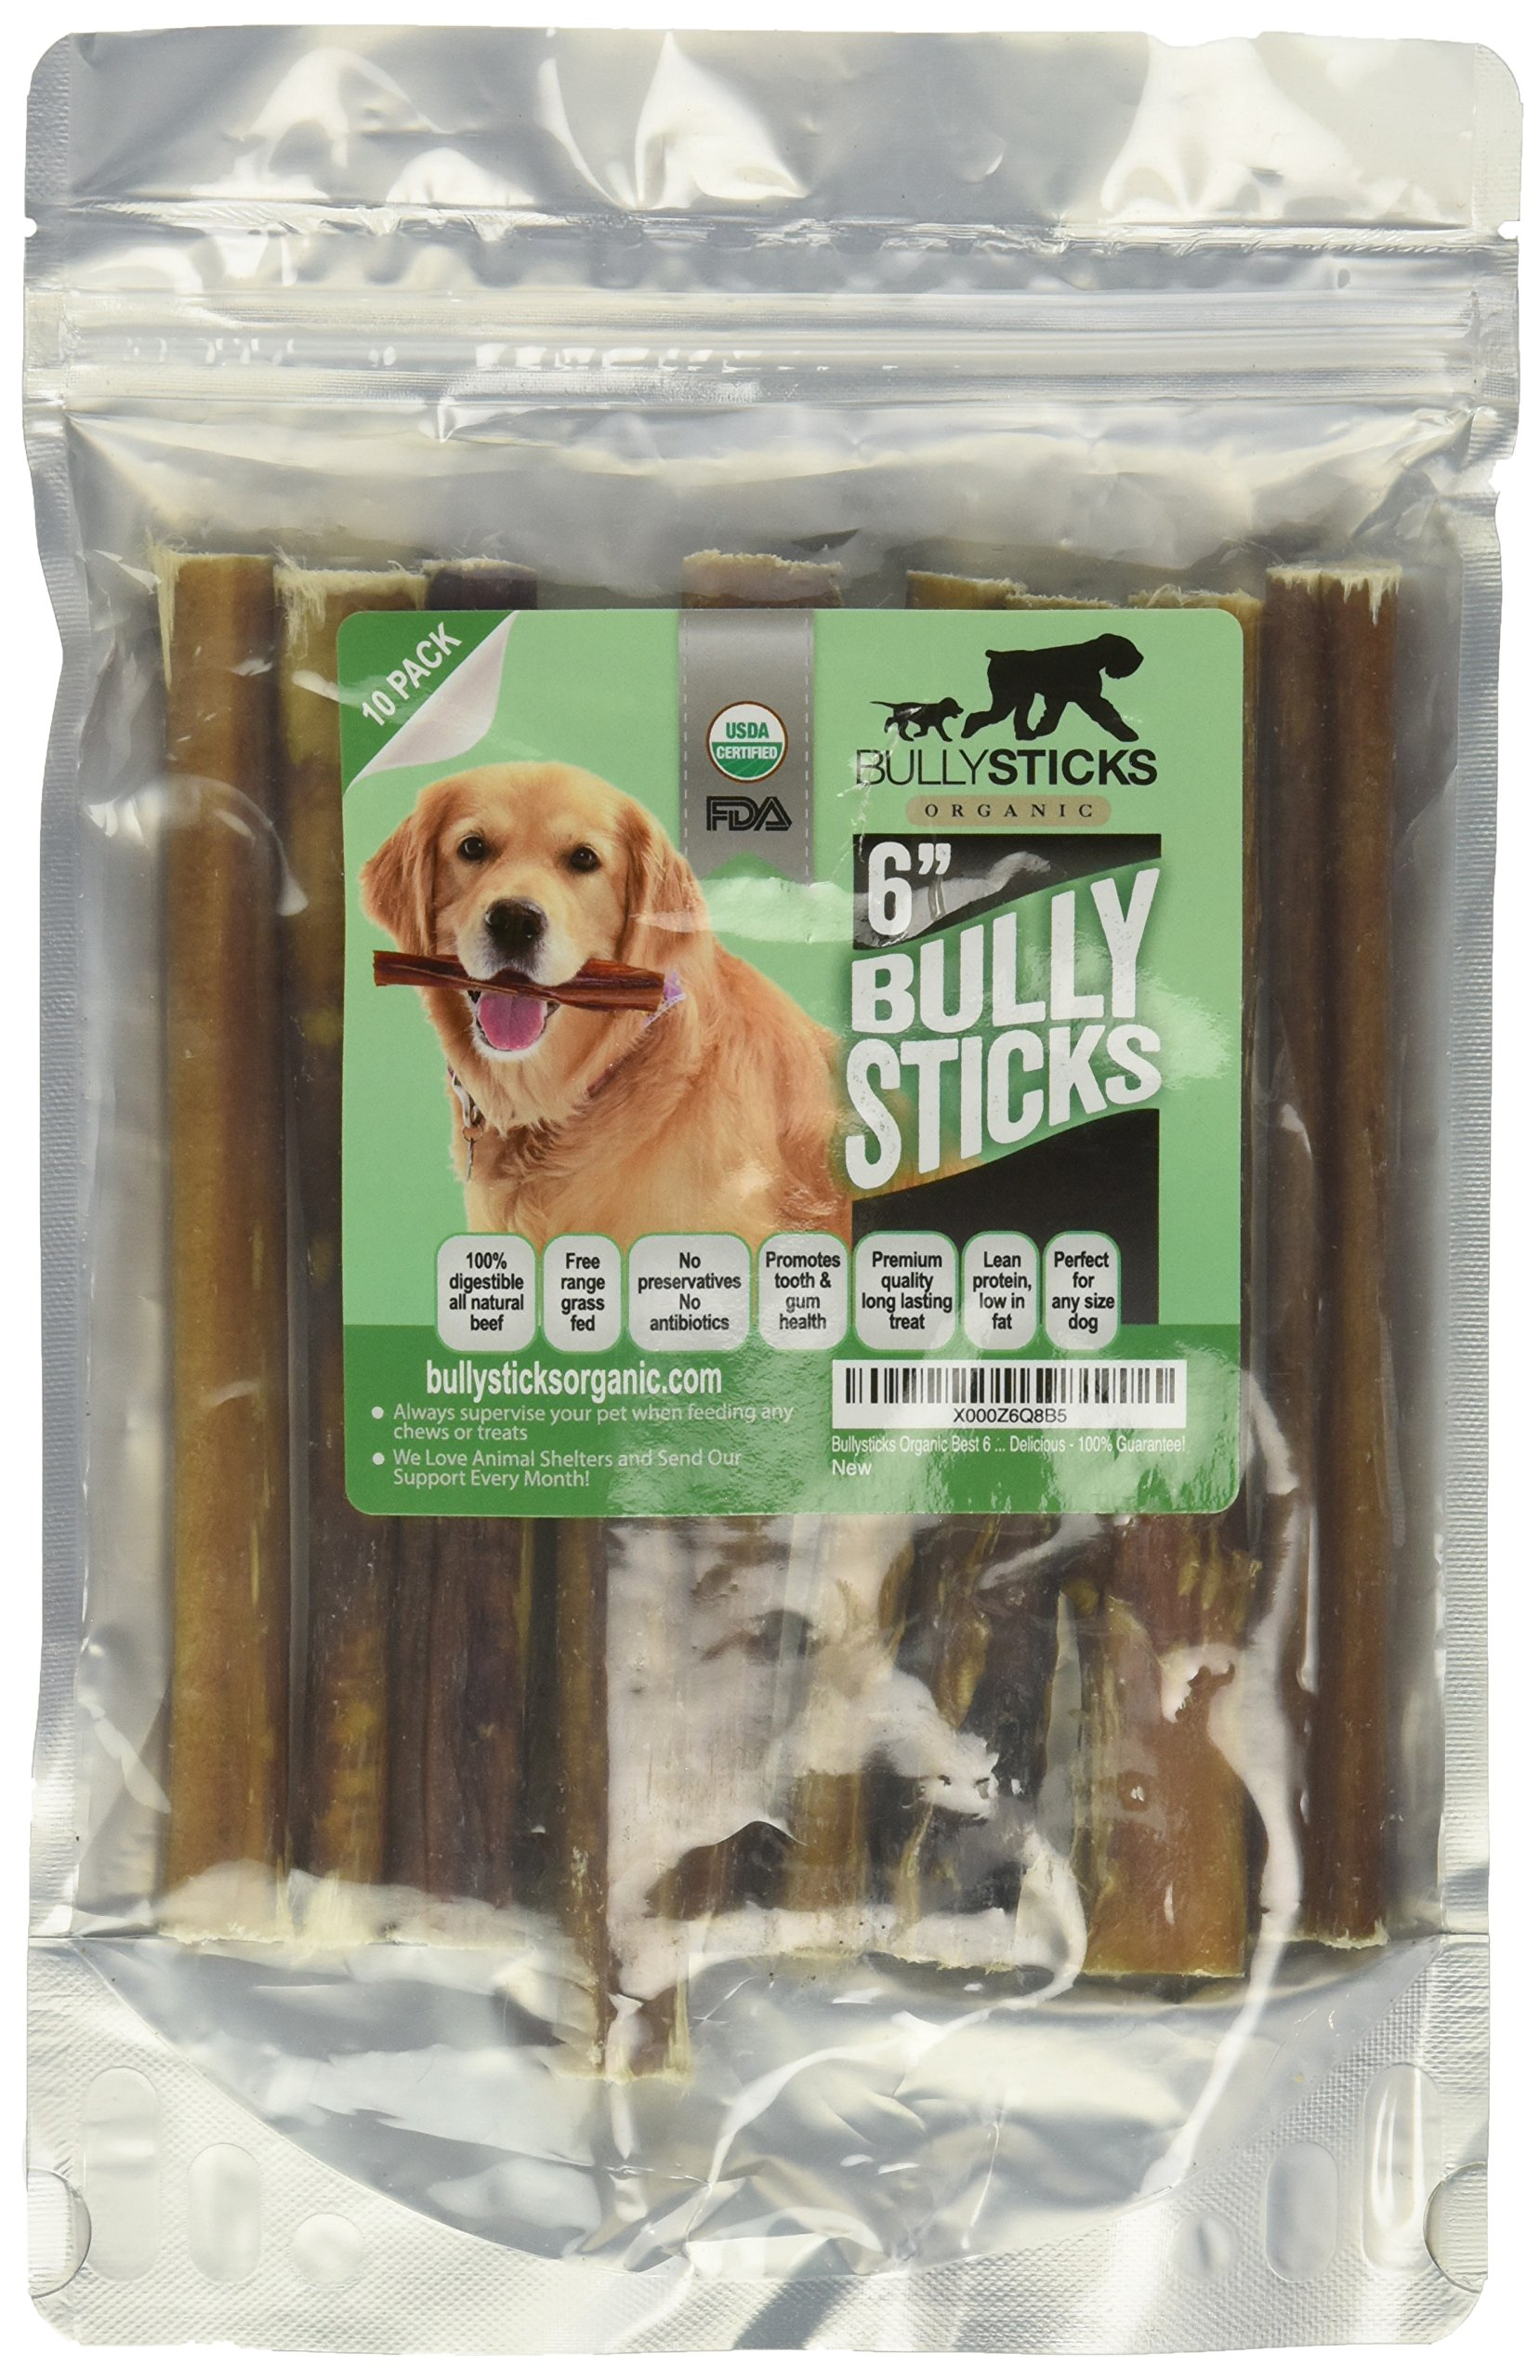 Bullysticks Organic Bully Sticks For Dogs - Big Bag 10 Pack Low Odor Dog Treats